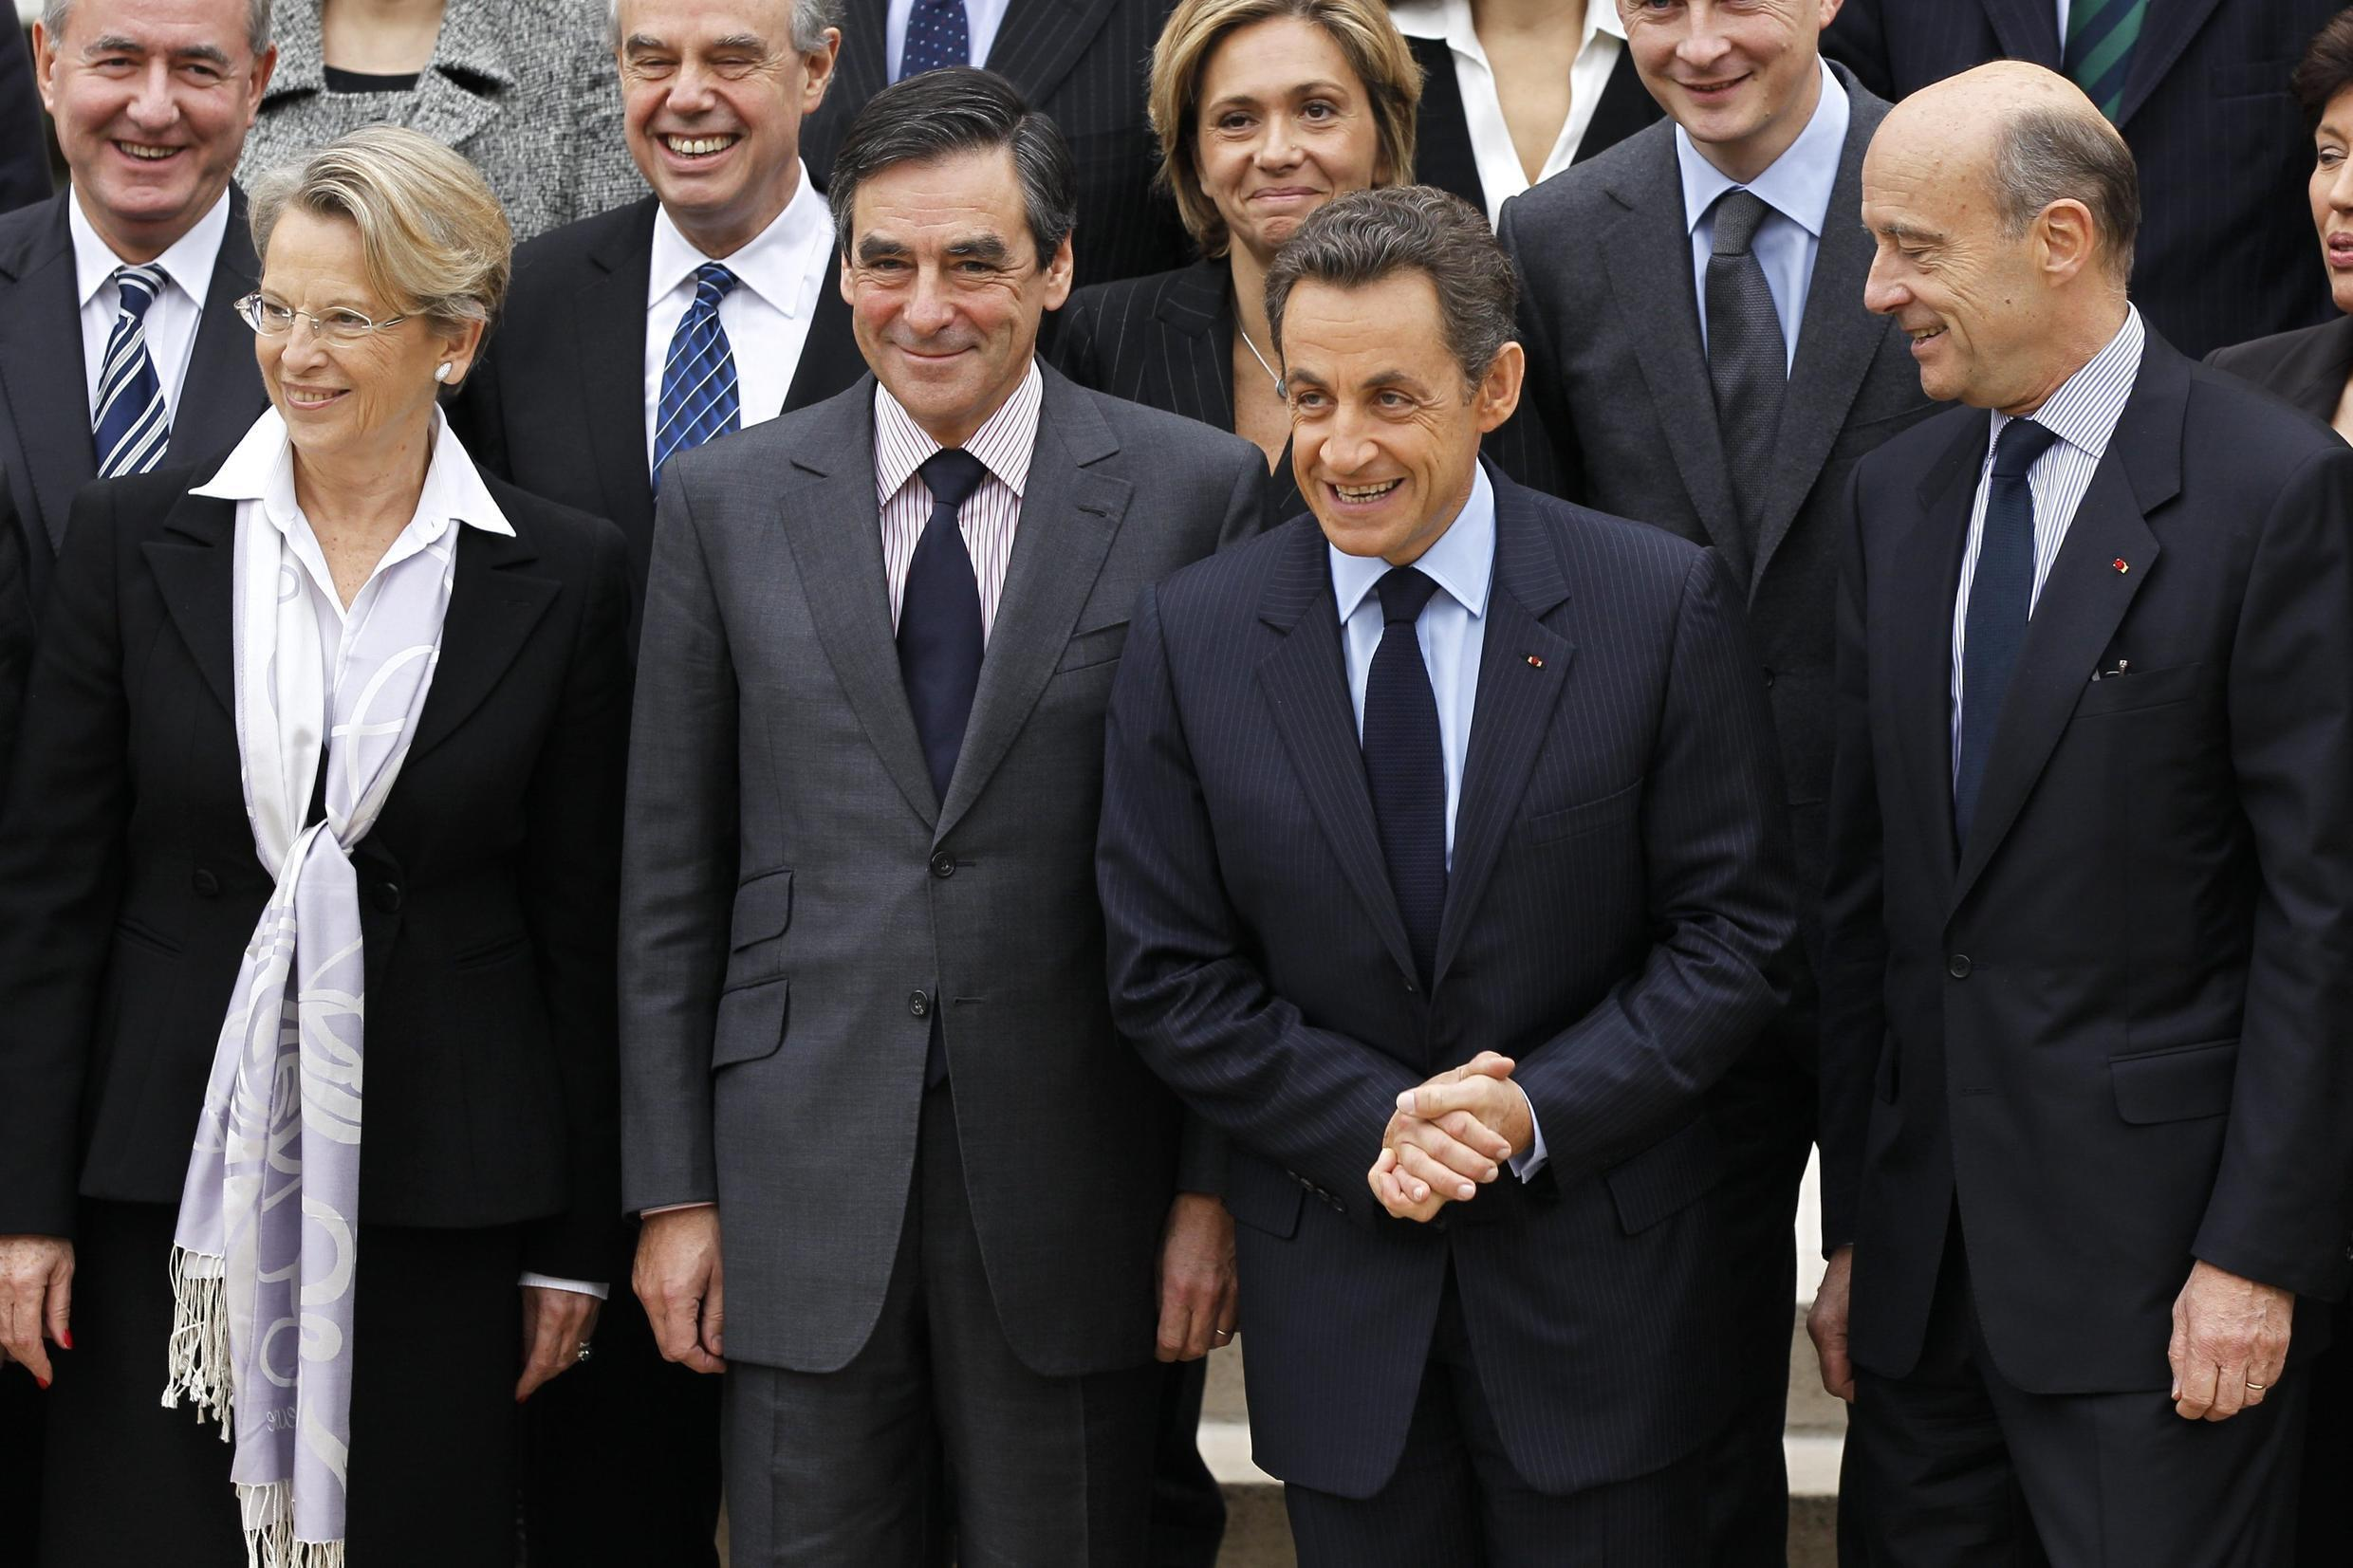 France's new government poses for a family picture at the Elysee Palace in Paris